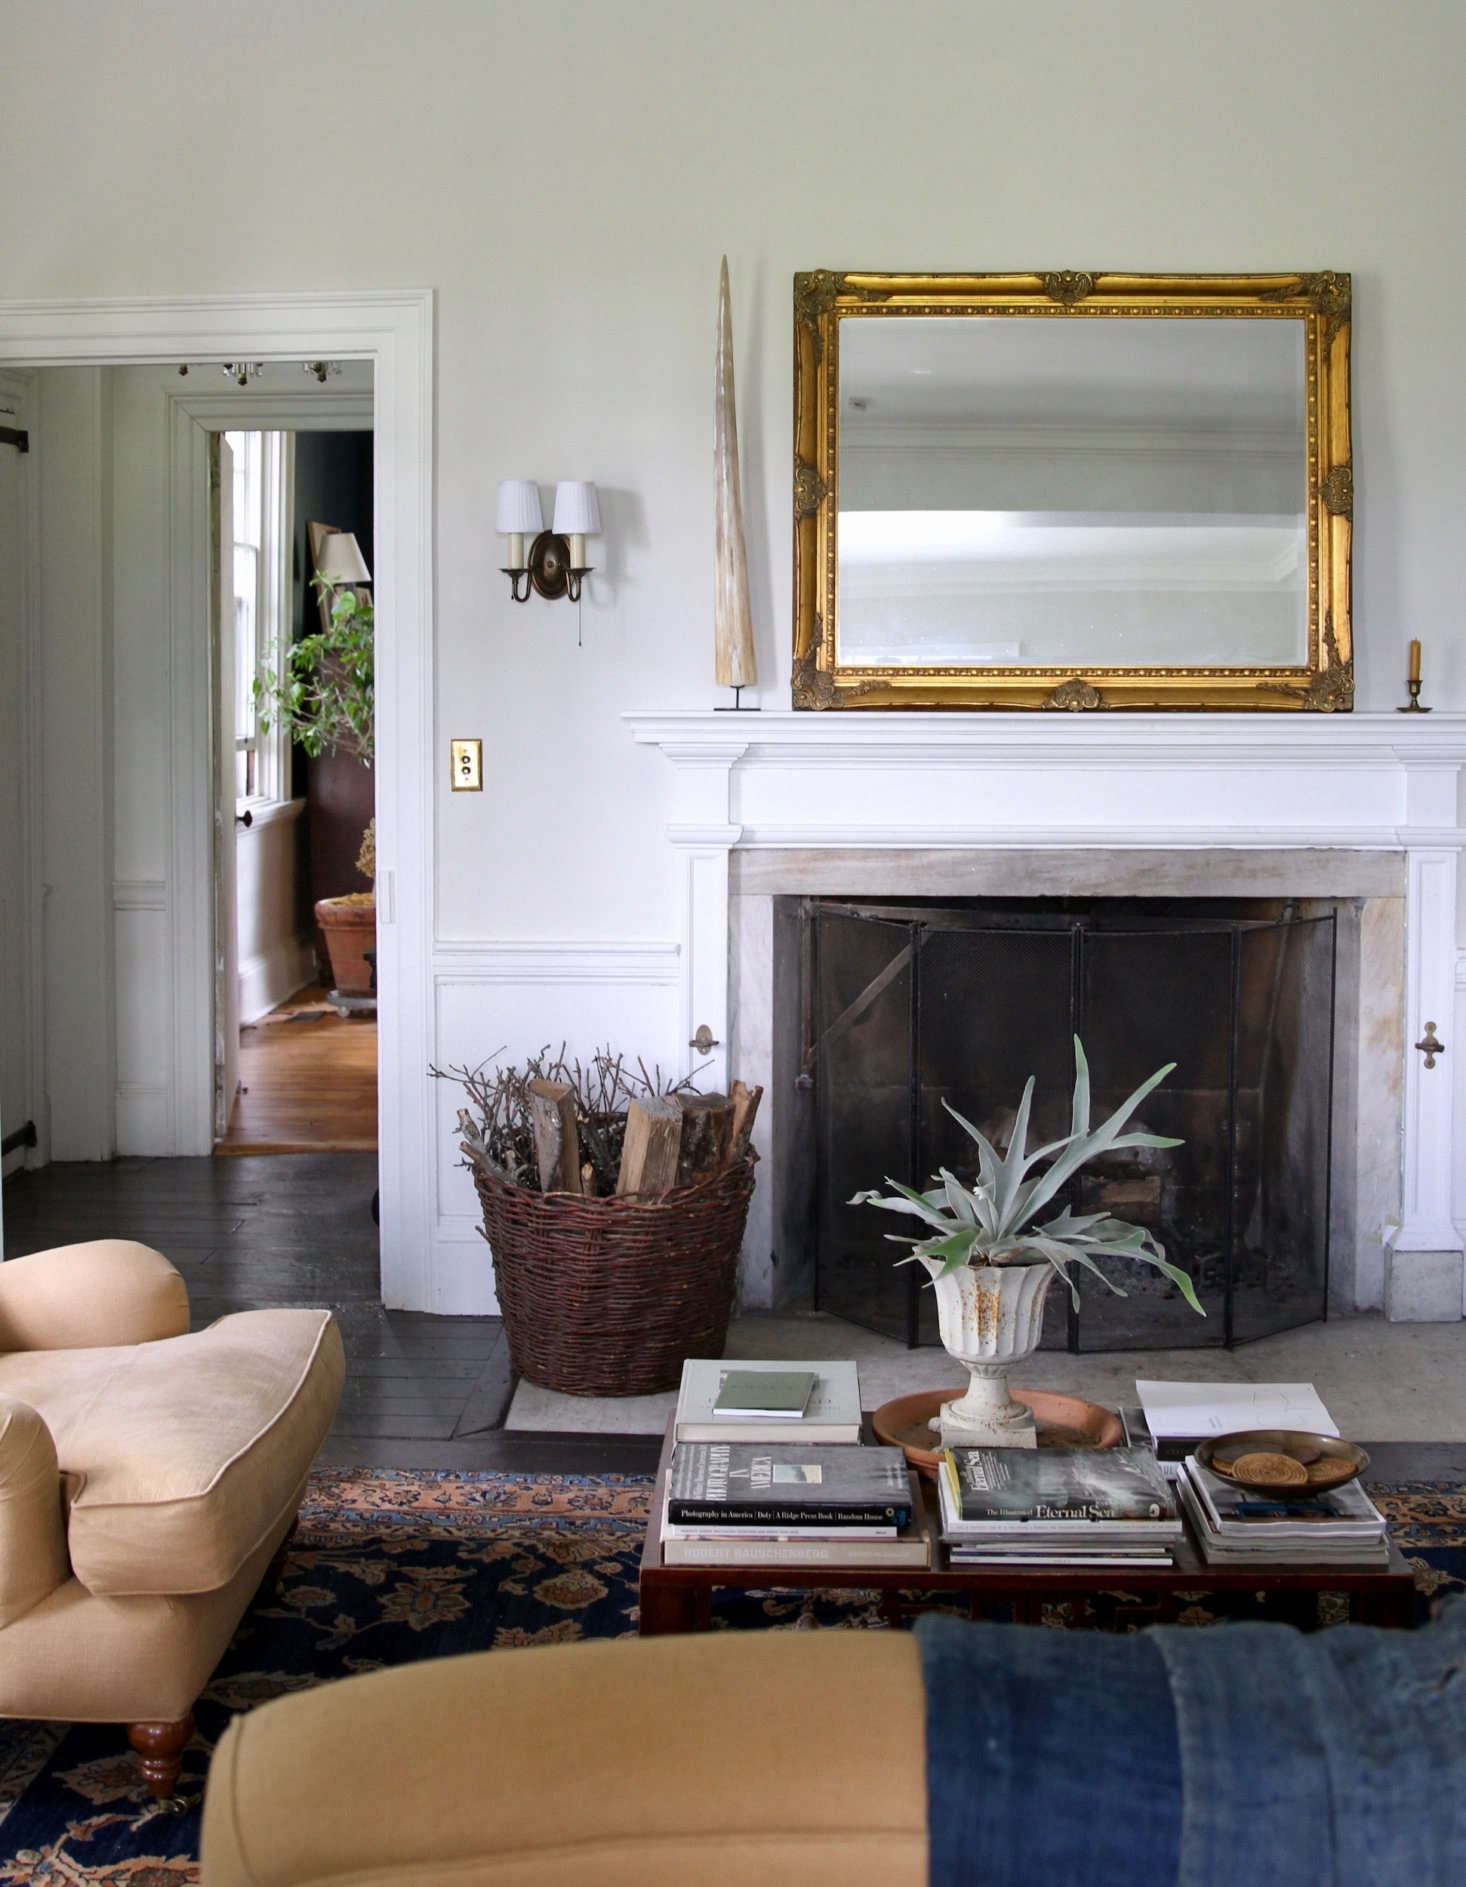 Two parlors on the first floor provide ample space to relax and unwind. Pictured is the back parlor.